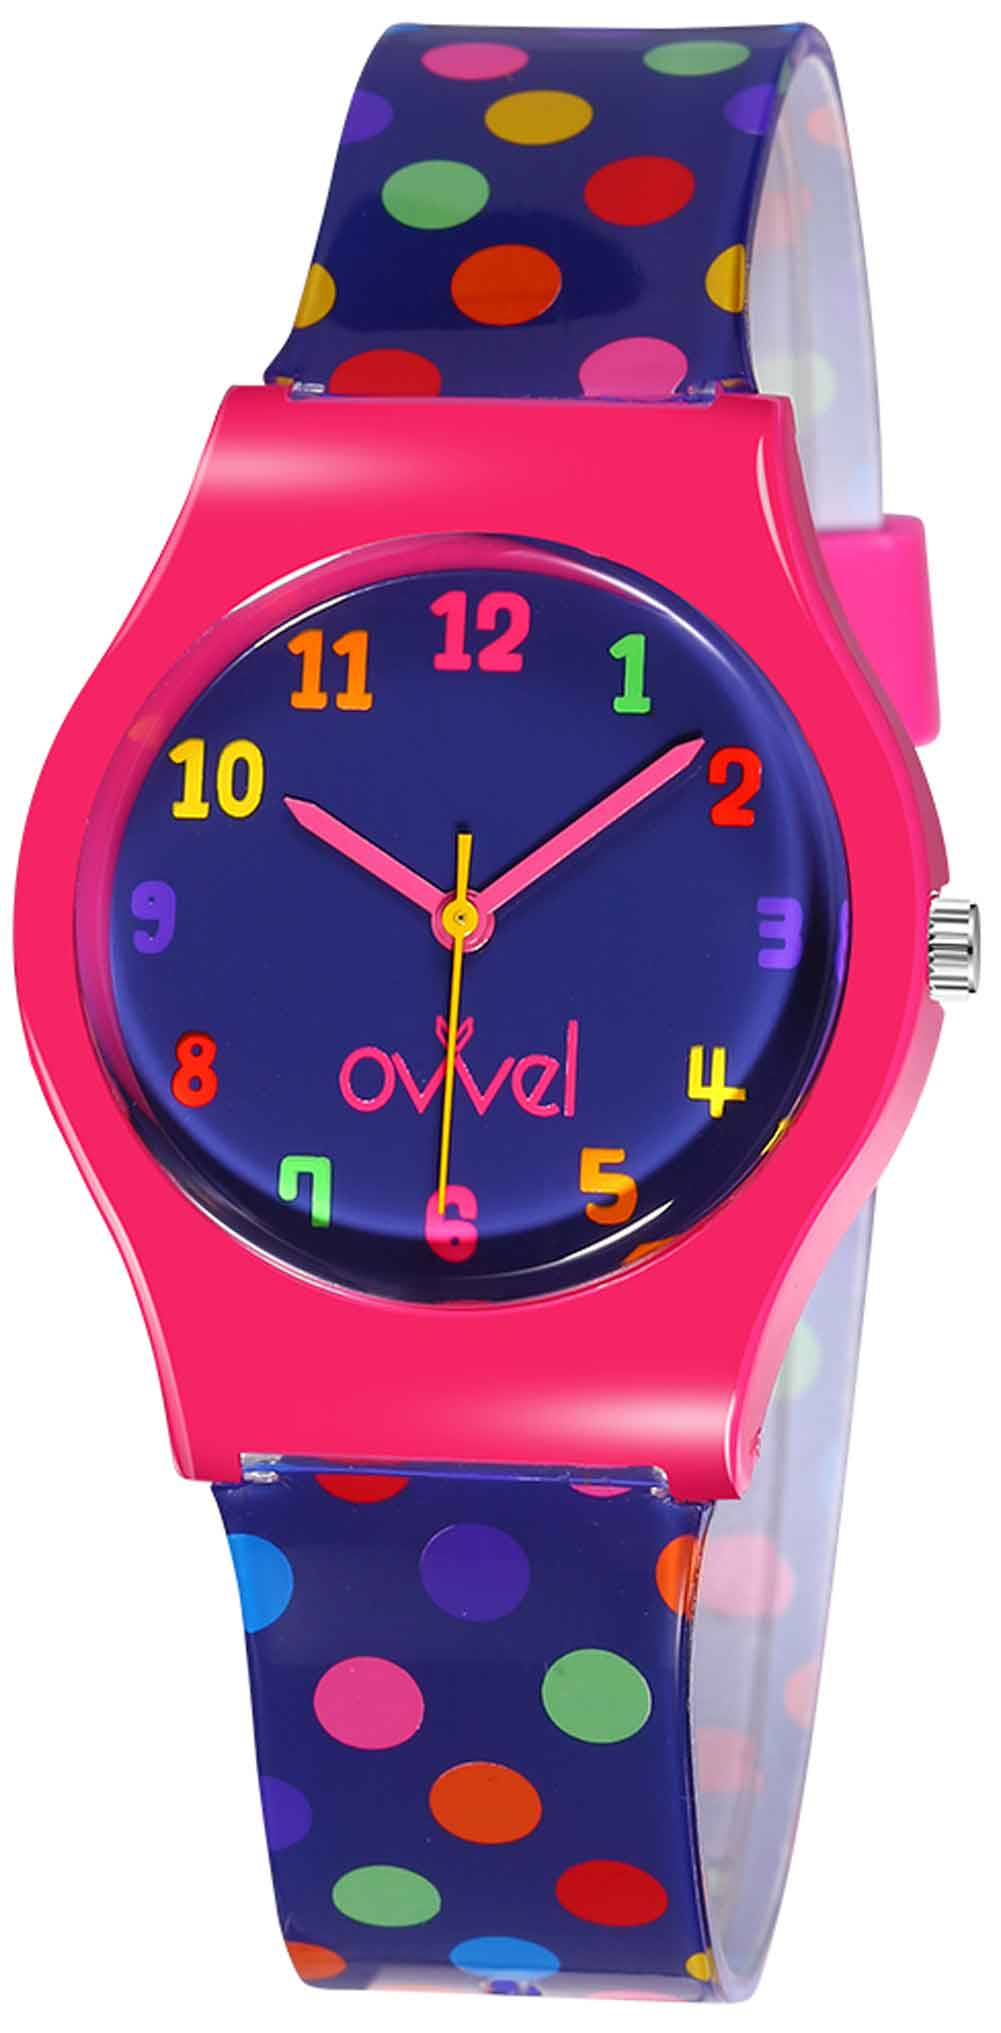 Watches for kids - Colorful Polka Dot